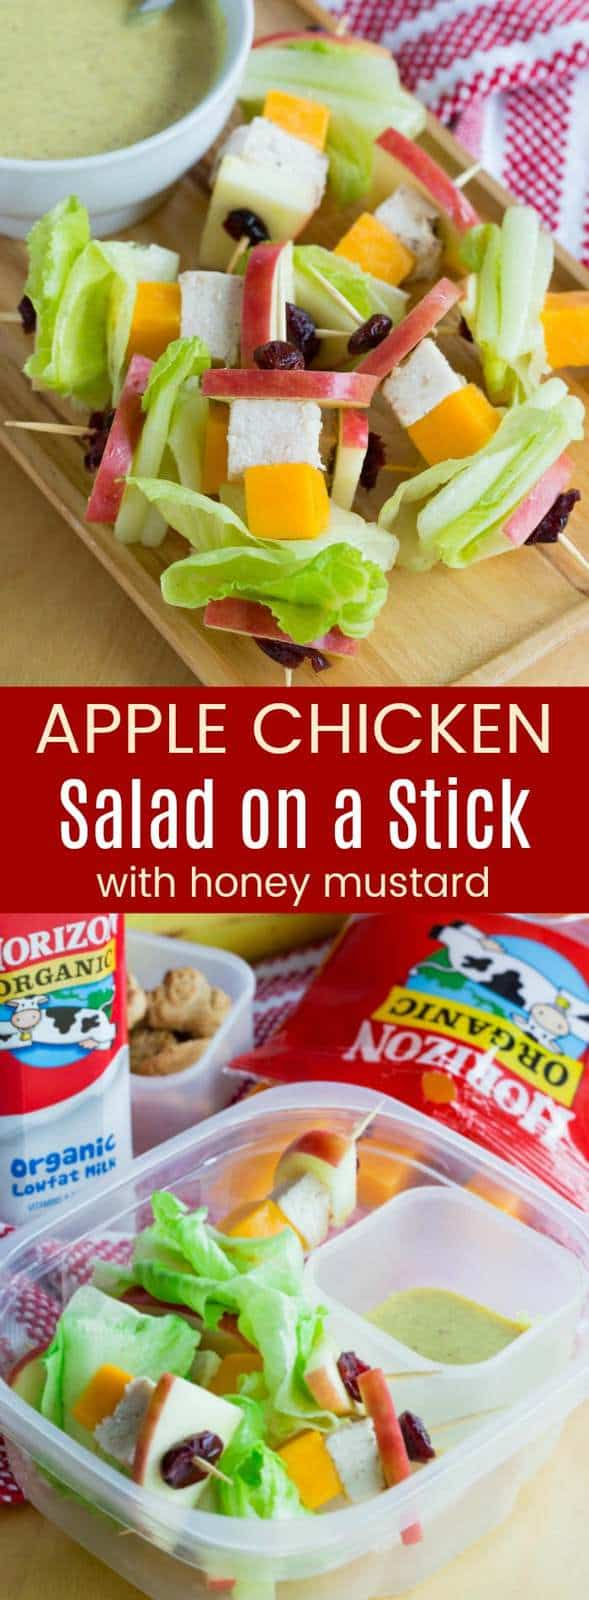 Apple Chicken Salad on a Stick - this easy recipe is a fun lunchbox idea or an after school snack when you dip them in Honey Mustard Dressing. They're also great game day appetizers. This gluten free lunch is made with @horizonorganic. #AD